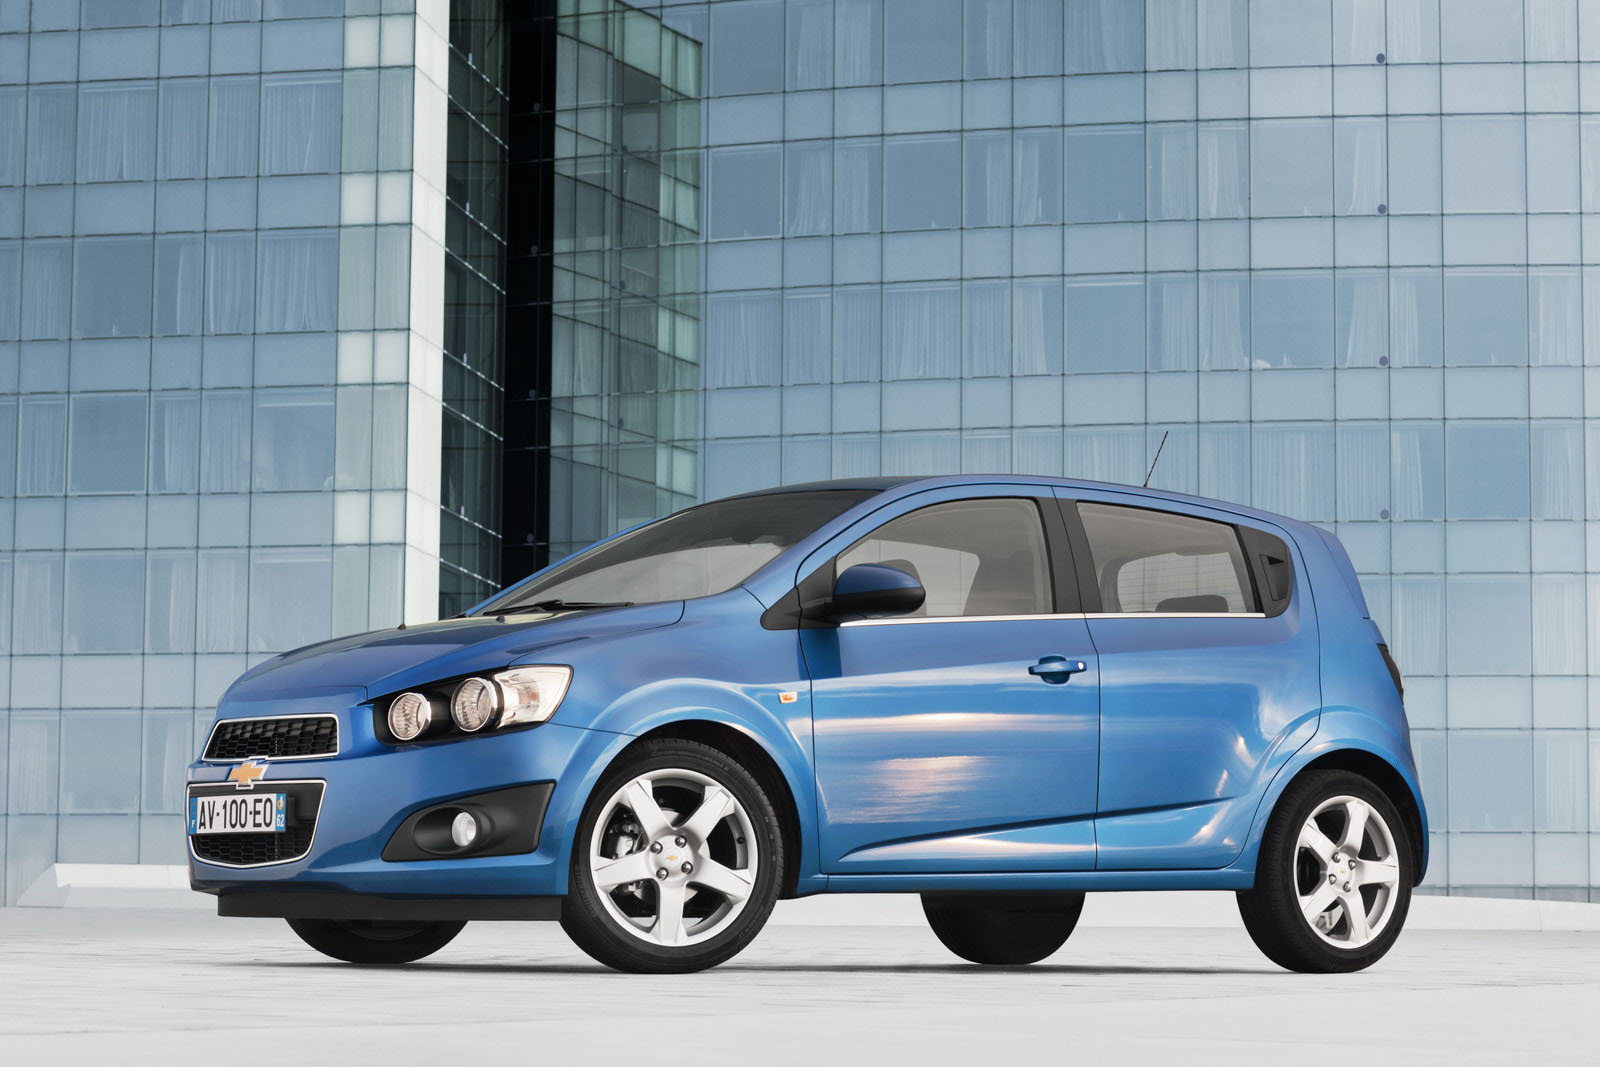 chevrolet to backfire 2012 aveo hatchback and sedan for. Black Bedroom Furniture Sets. Home Design Ideas